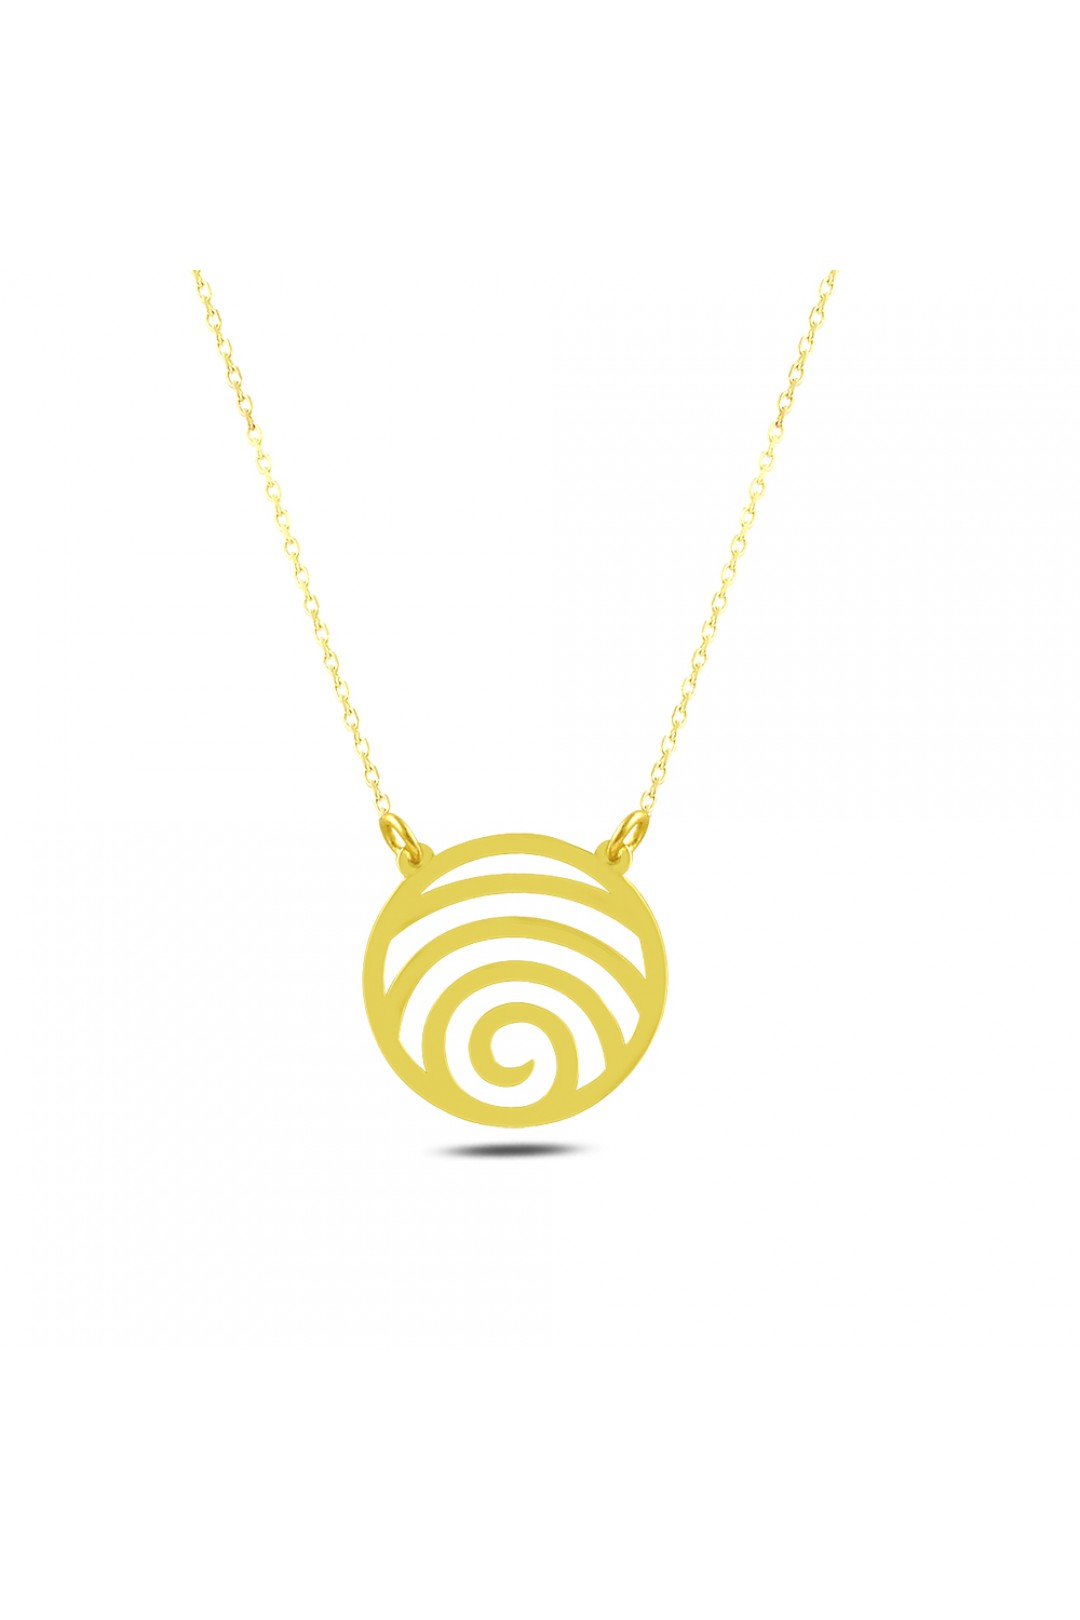 GEOMETRY CIRCLE NECKLACE